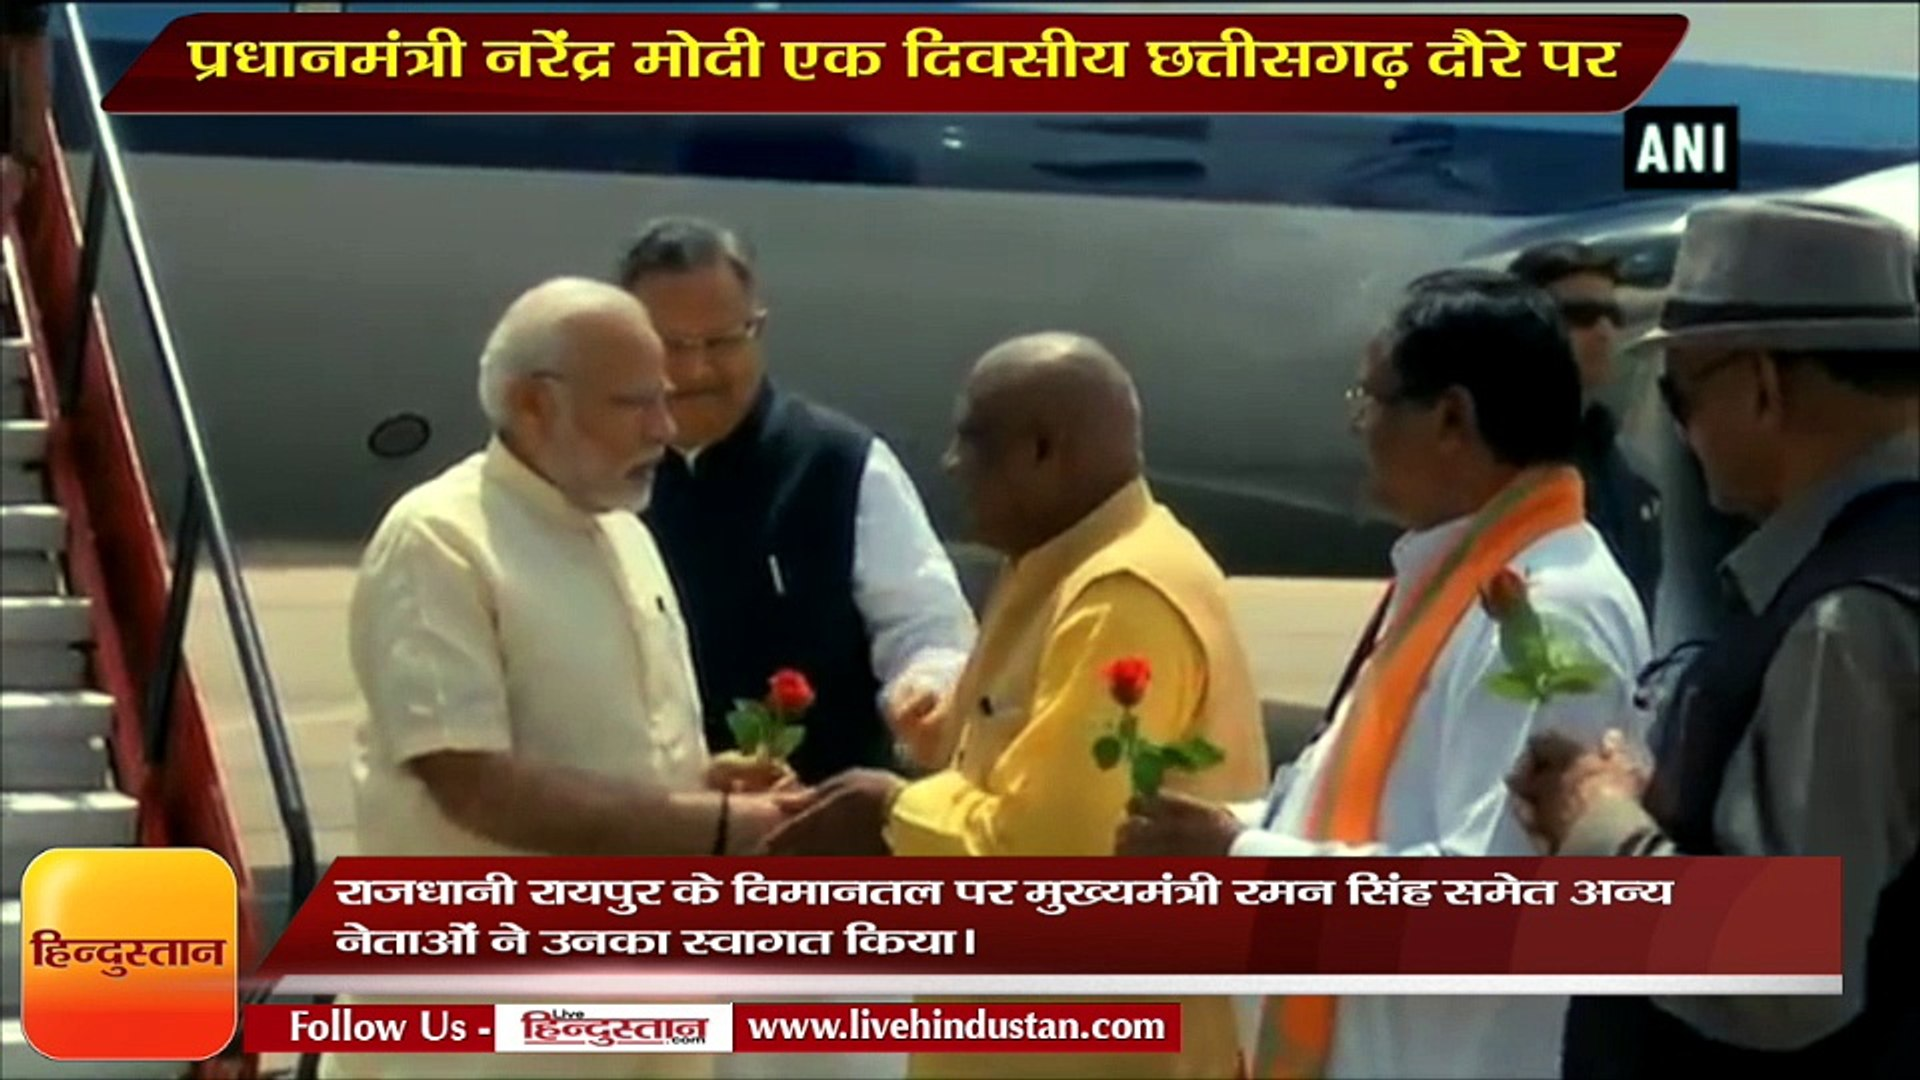 Chhattisgarh News  II PM Modi arrives in Raipur to inaugurate multiple projects